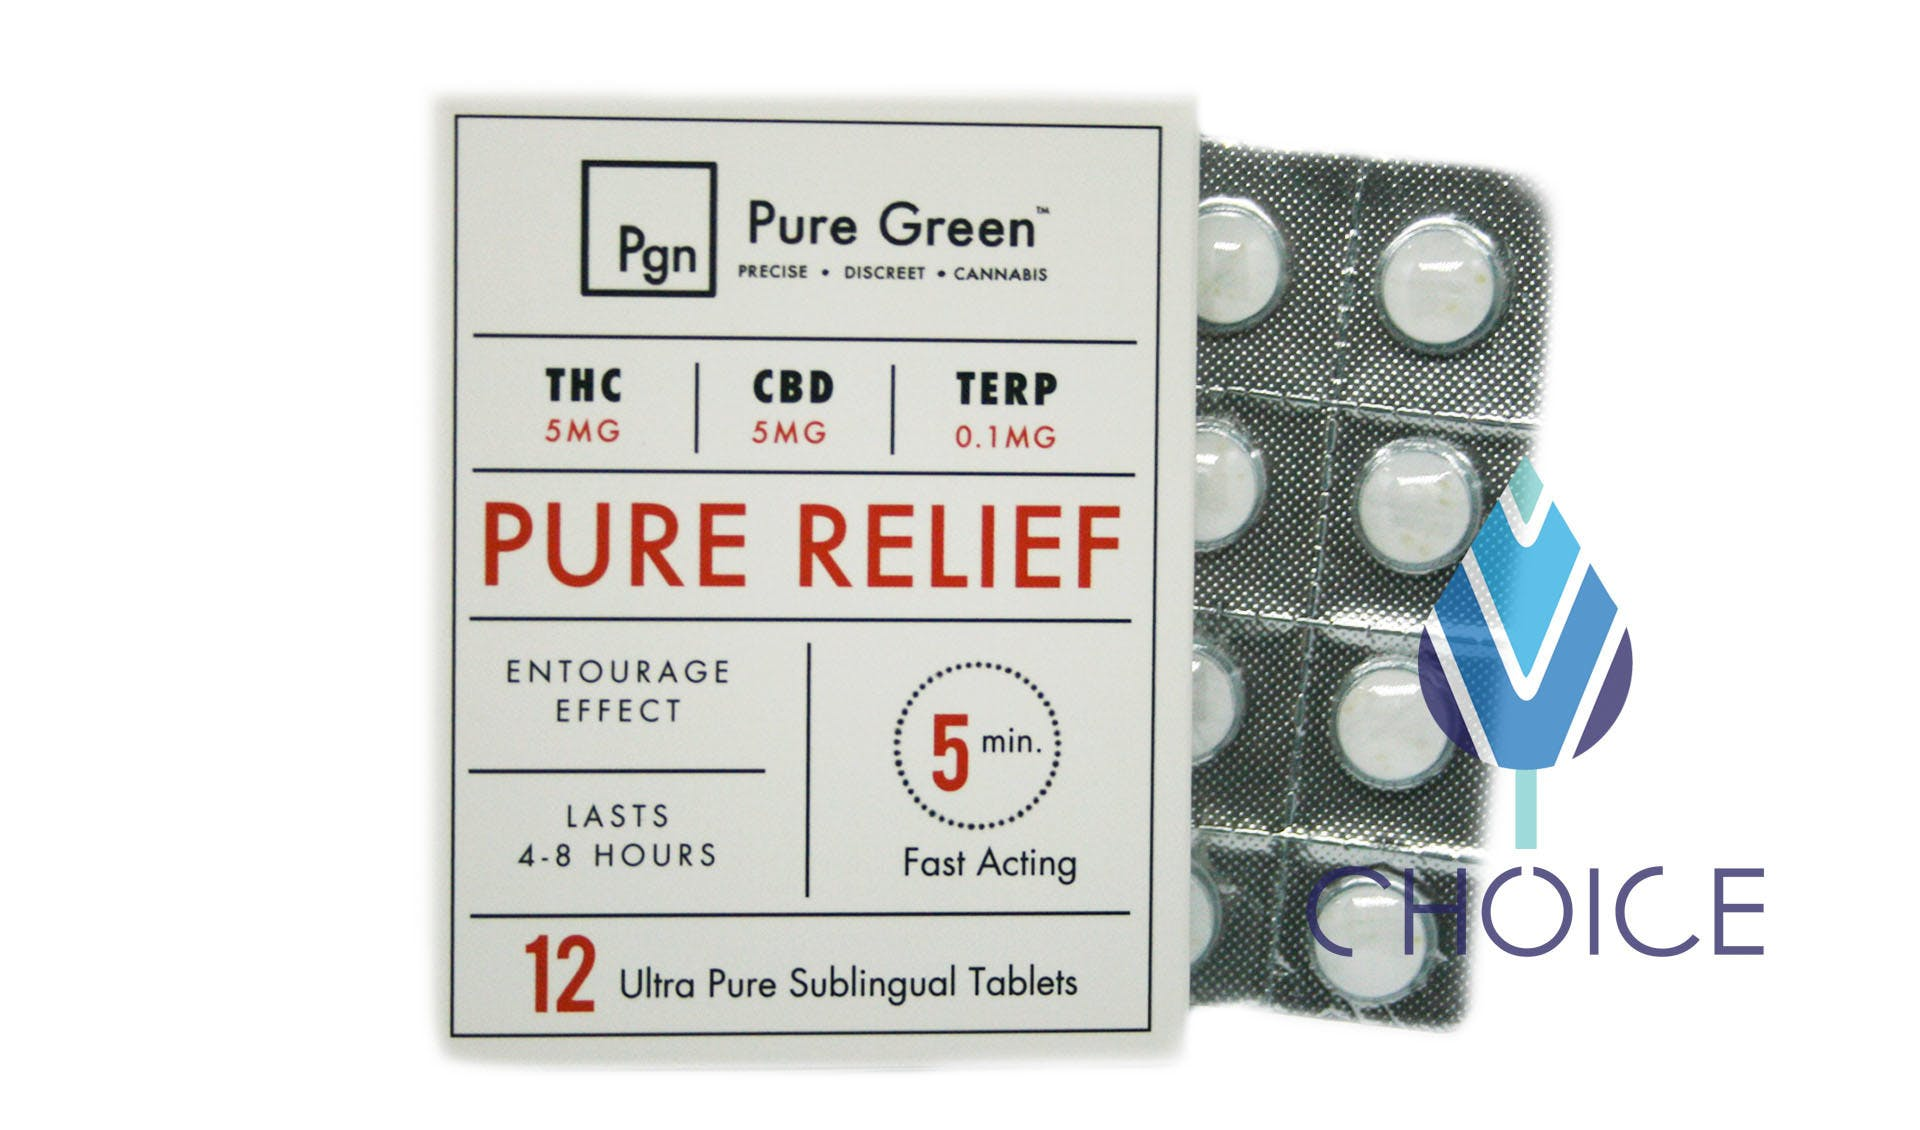 marijuana-dispensaries-choice-exit-145-in-jackson-12-pk-pure-relief-cbdthc-tablets-by-pure-green